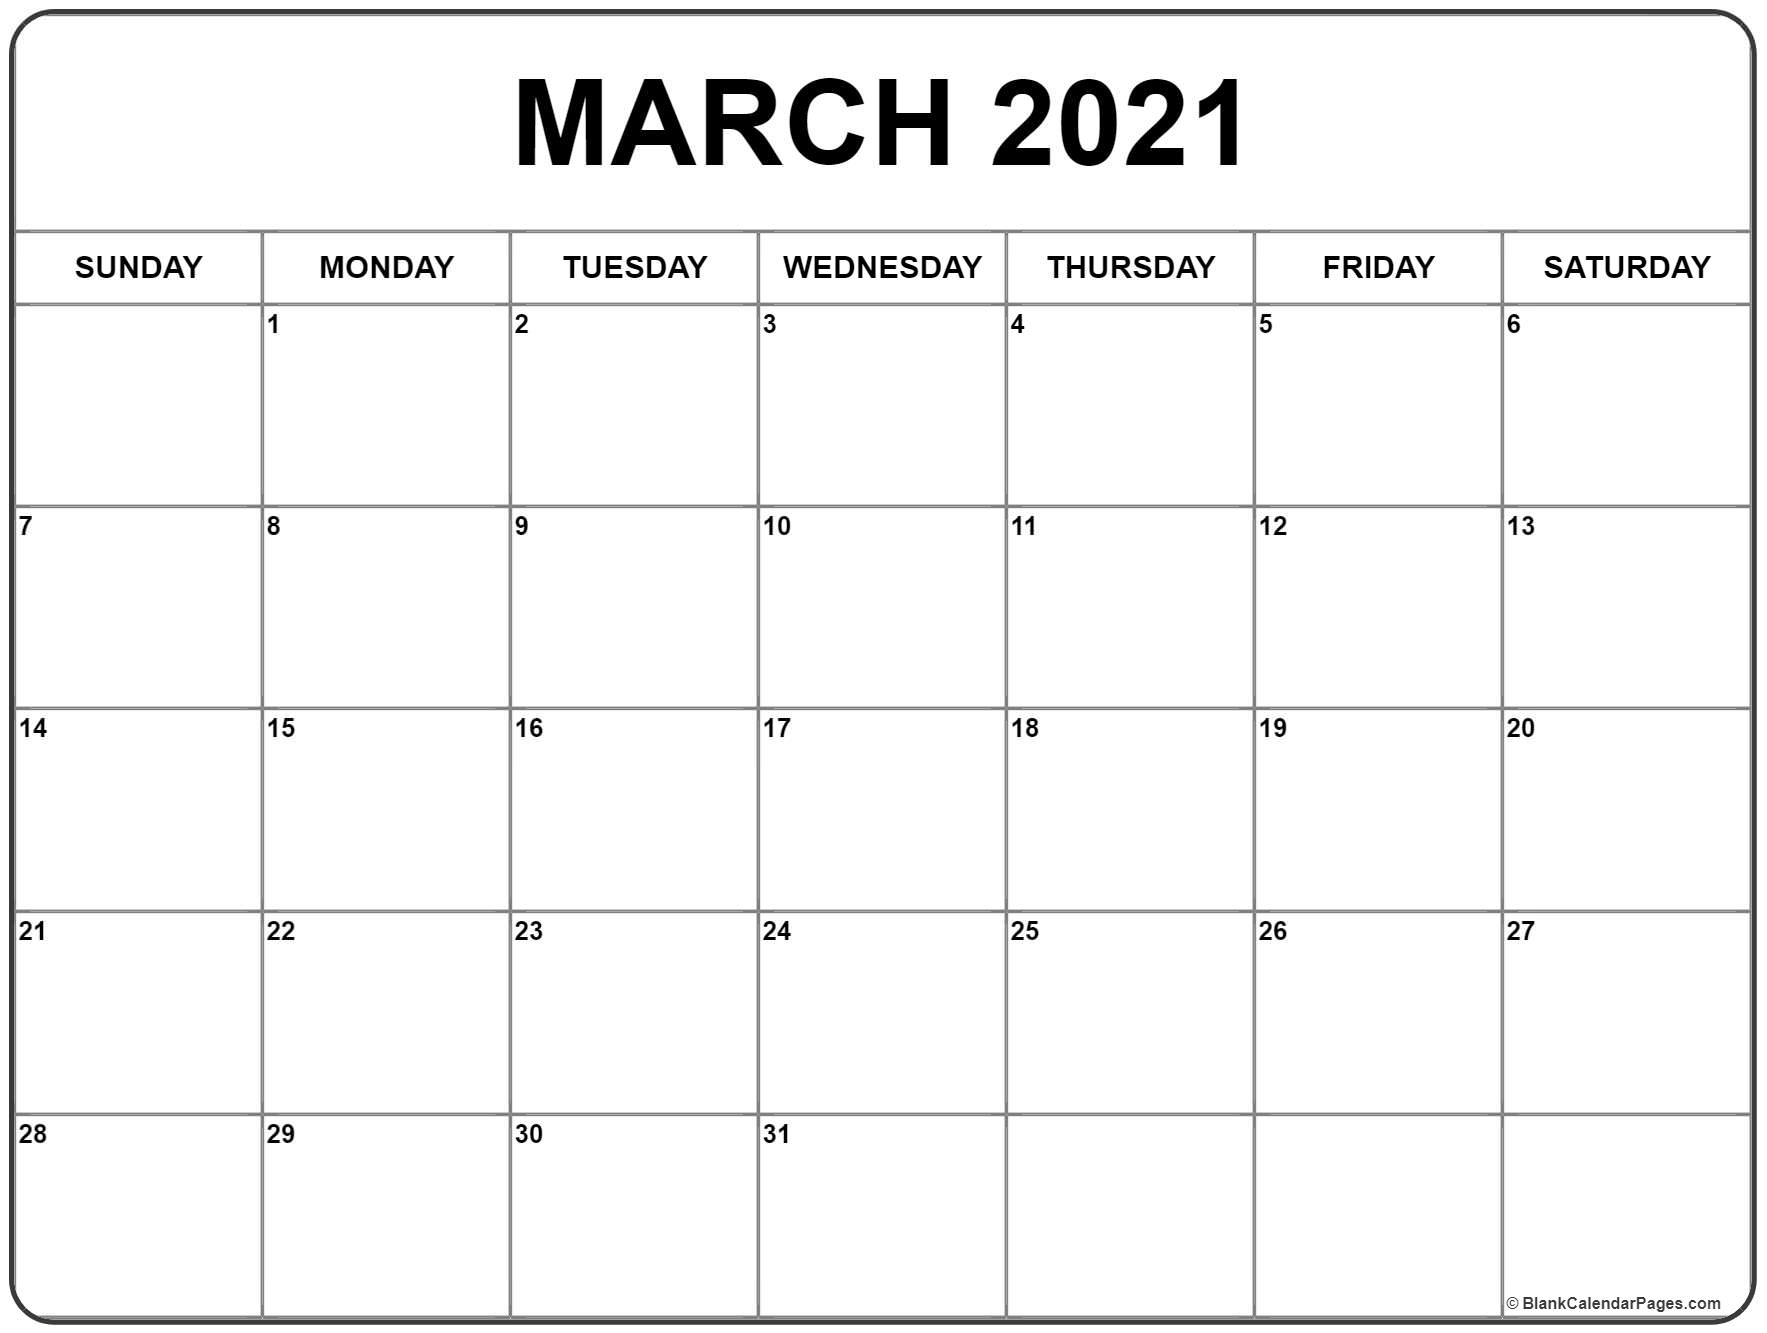 March 2021 Calendar | Free Printable Monthly Calendars